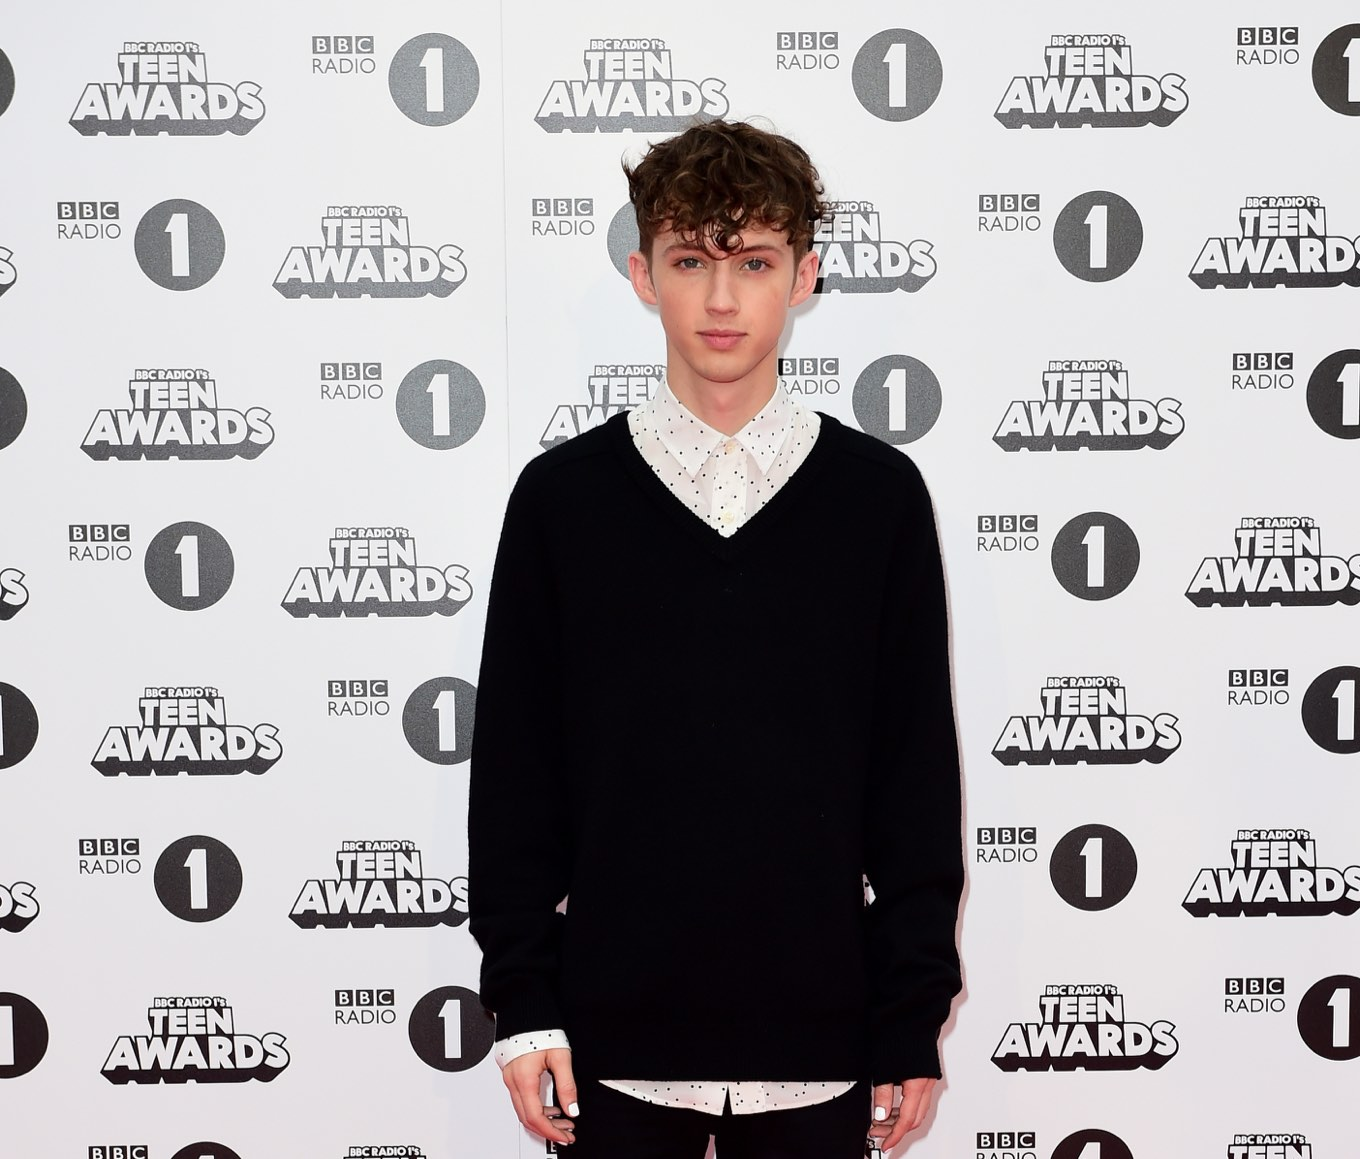 BBC Radio 1's Teen Awards - London. Troye Sivan arriving for the BBC Radio 1's Teen Awards, Wembley Arena, London. PRESS ASSOCIATION Photo. Picture date: Sunday November 8, 2015. (Photo by: Ian West/PA Wire/Press Association via AP Images)